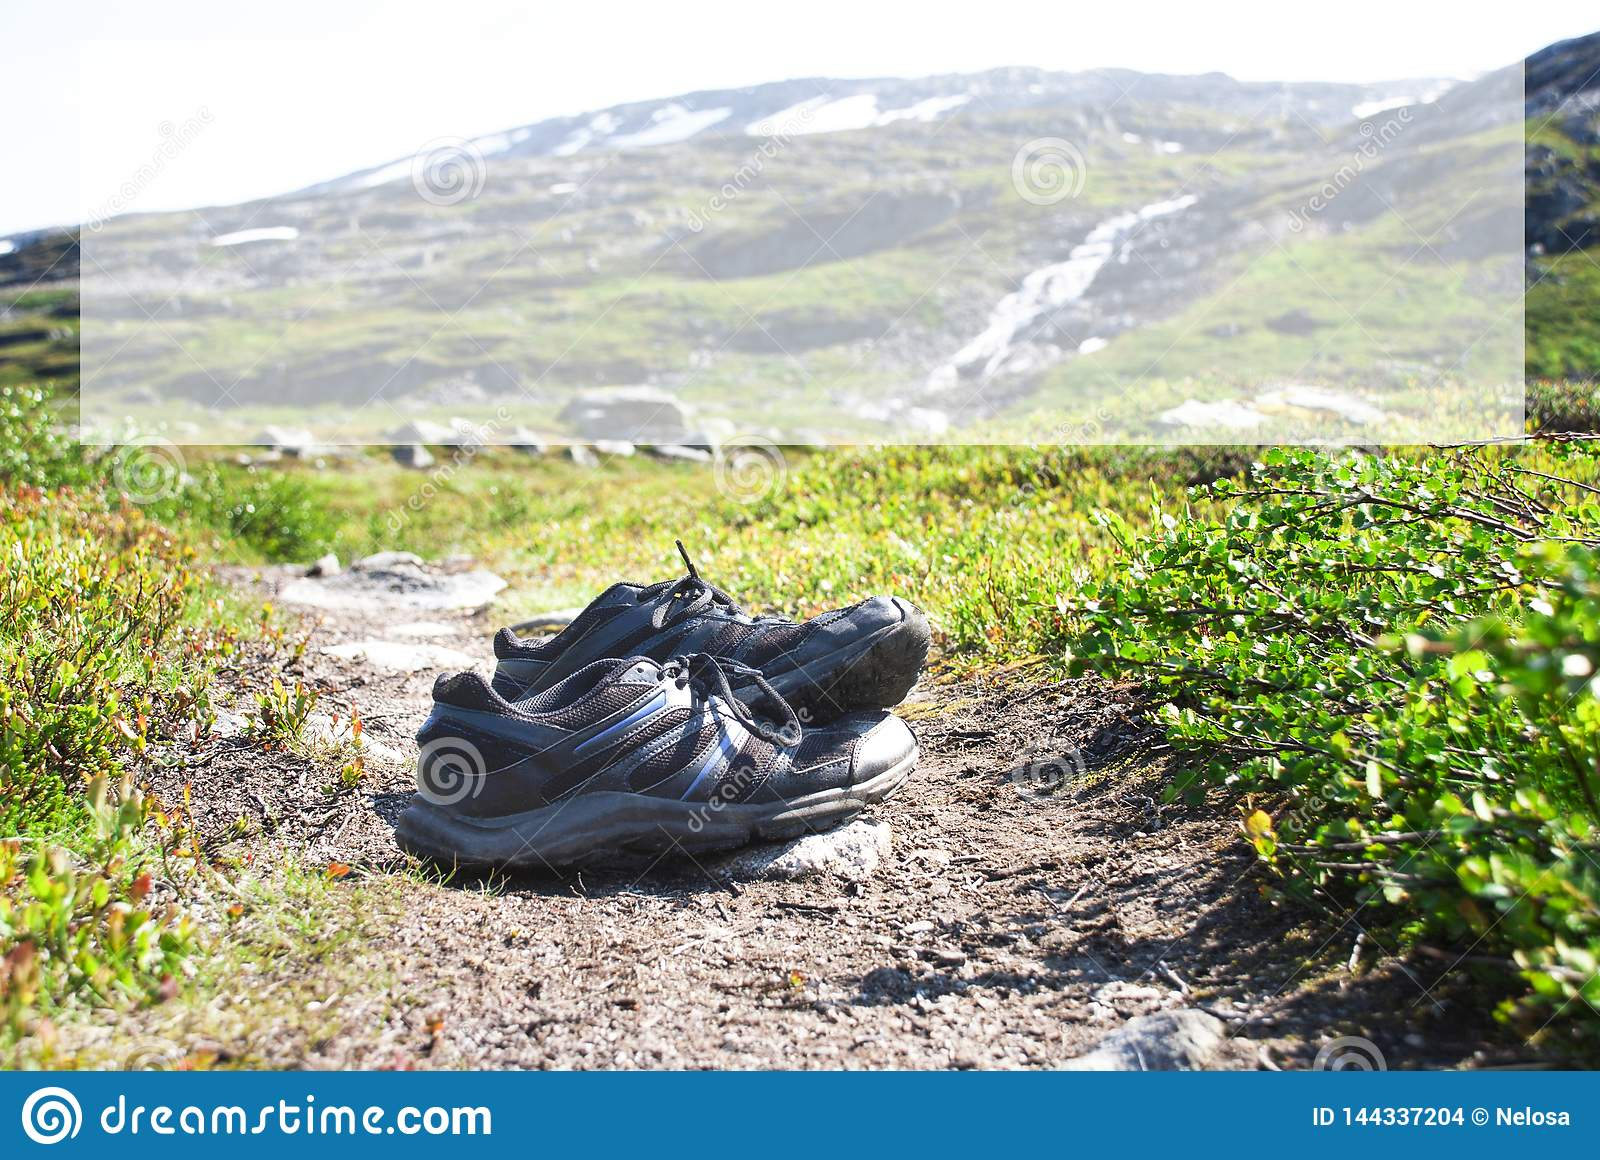 Shoes On Trekking Path, Copy Space, Norway Mountain